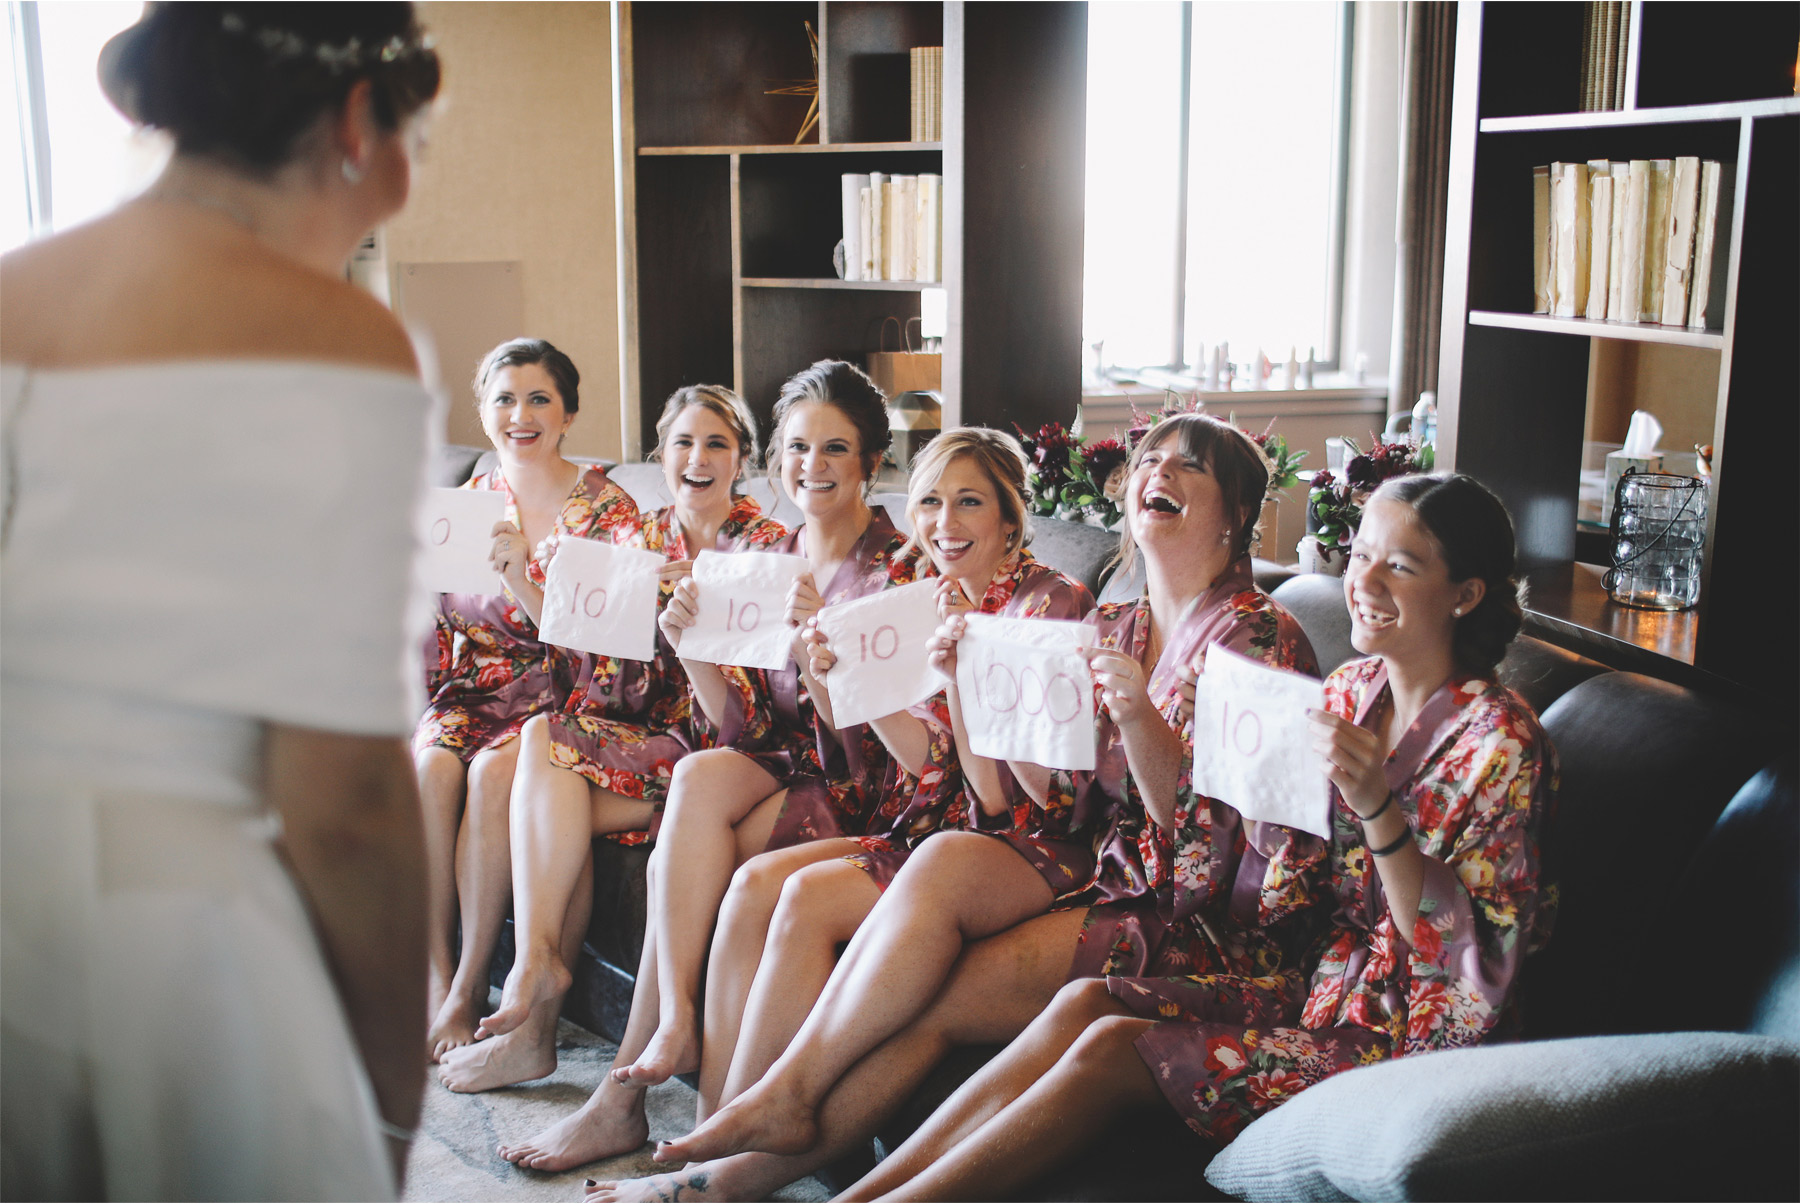 03-Minneapolis-Minnesota-Wedding-Photography-by-Vick-Photography-Loews-Hotel-Bridesmaids-Getting-Ready-Caitlin-and-Alec.jpg